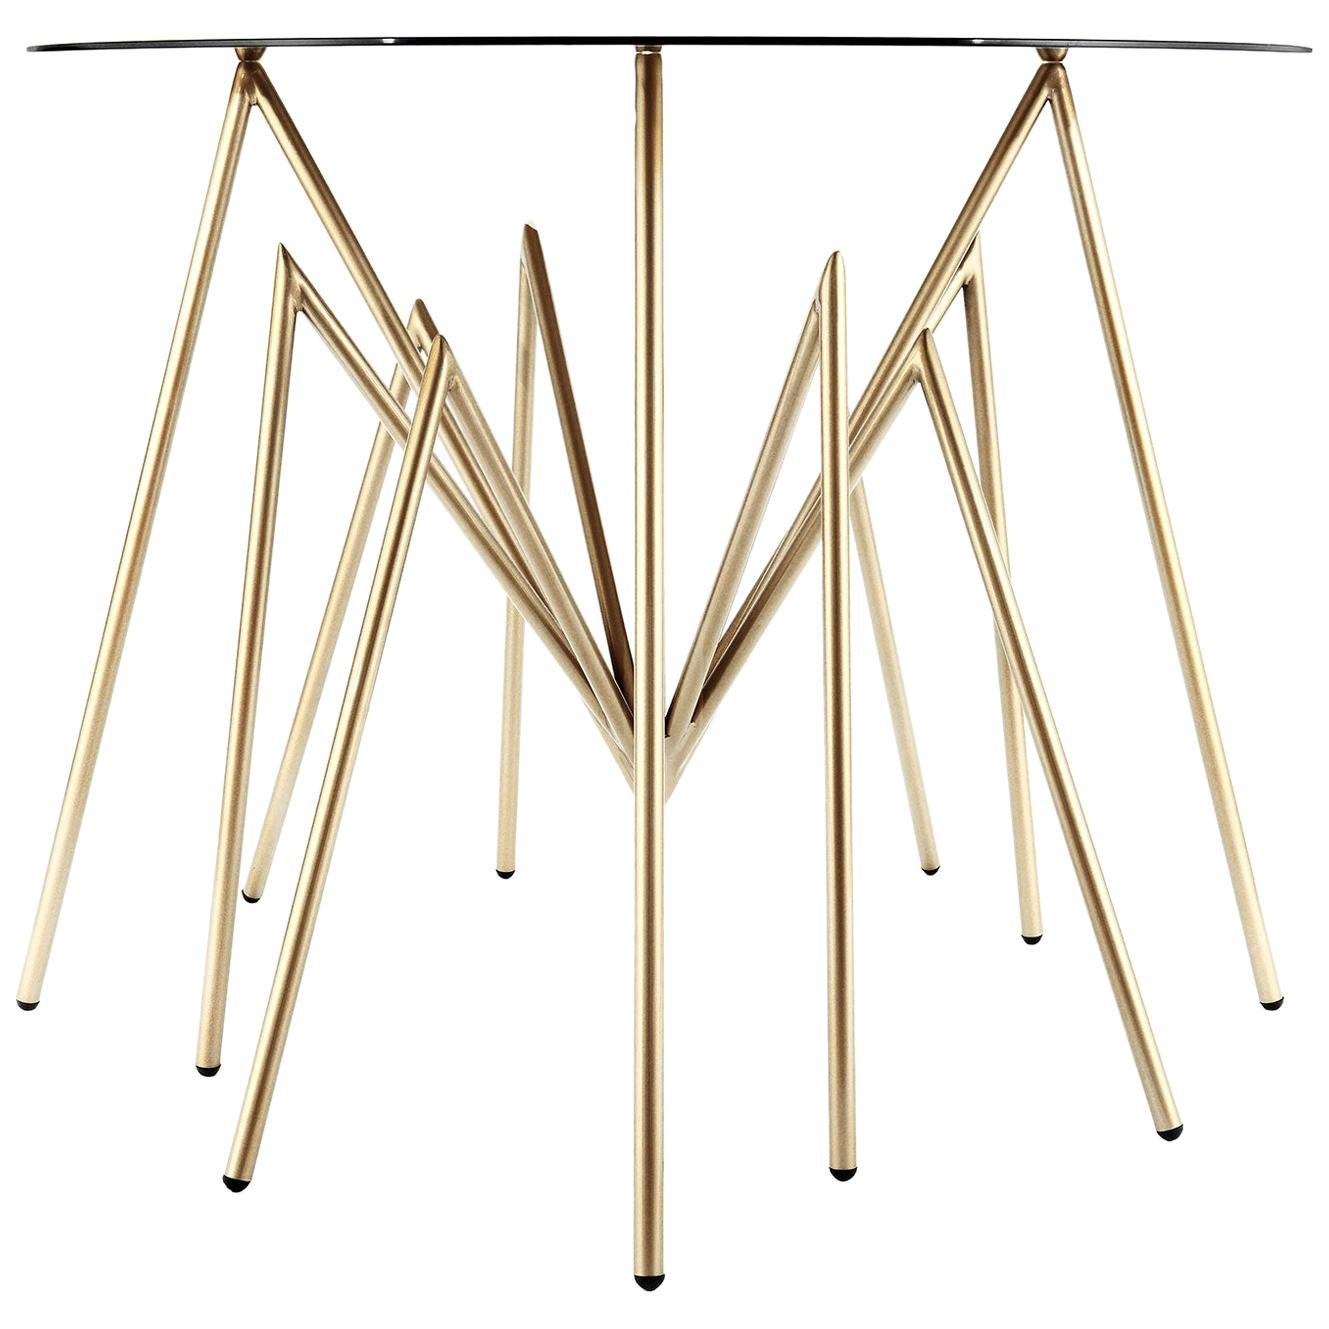 """Zeville """"Ennox 7 Spider"""", Swiss-Made Gold-Plated Classic Table"""